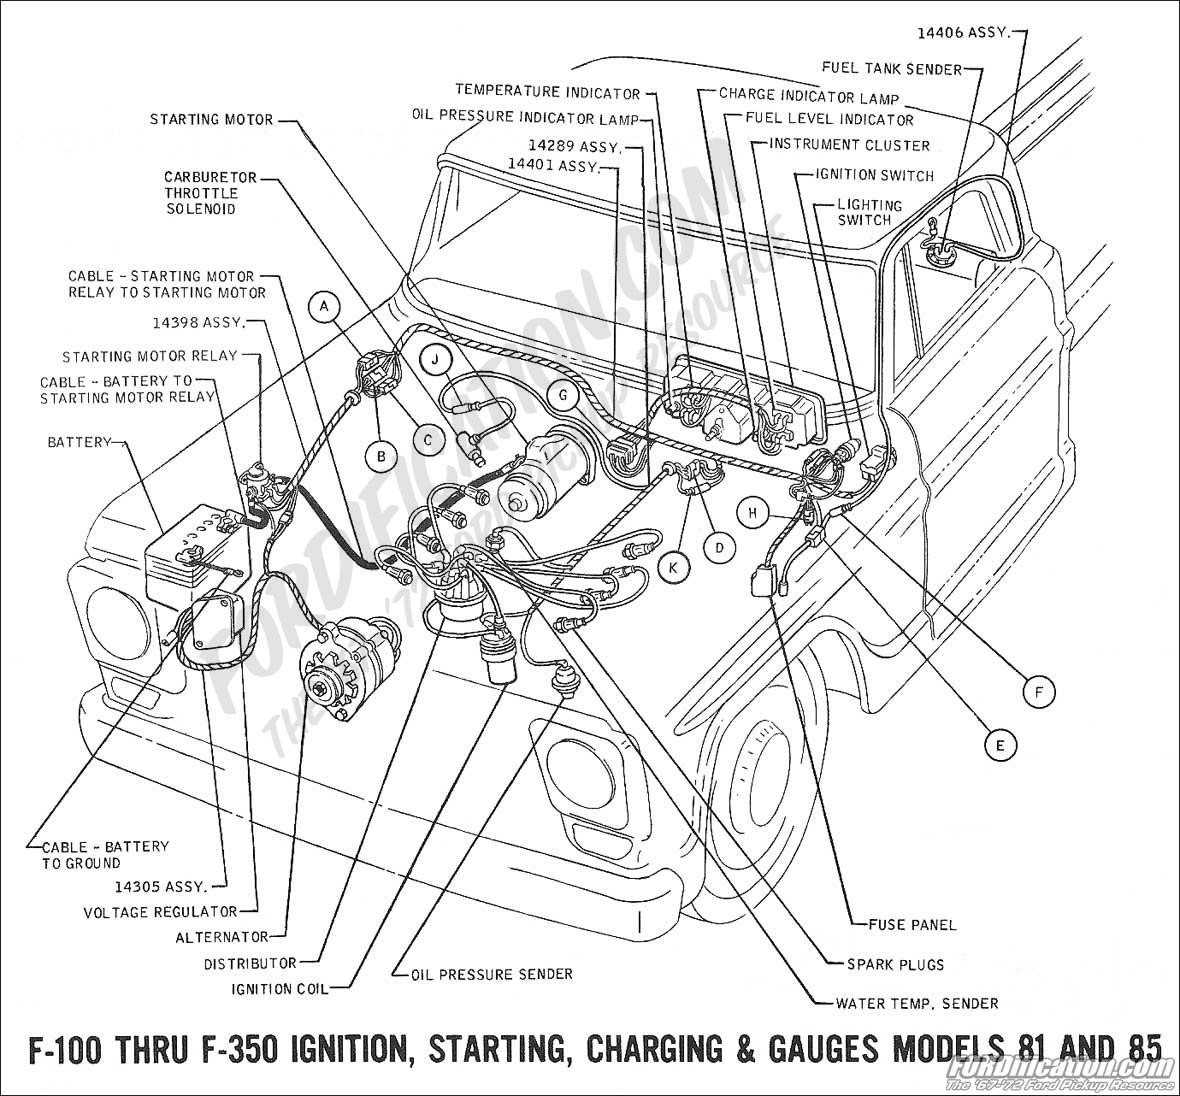 1969 chevy pickup wiring diagram with Schematics H on P 0900c15280251e19 also Wiring Diagram 1973 Chrysler Imperial in addition 1972 Toyota Fj40 Wiring Diagram furthermore Brake System further 1967 Chevelle Column Shift Linkage Diagram.